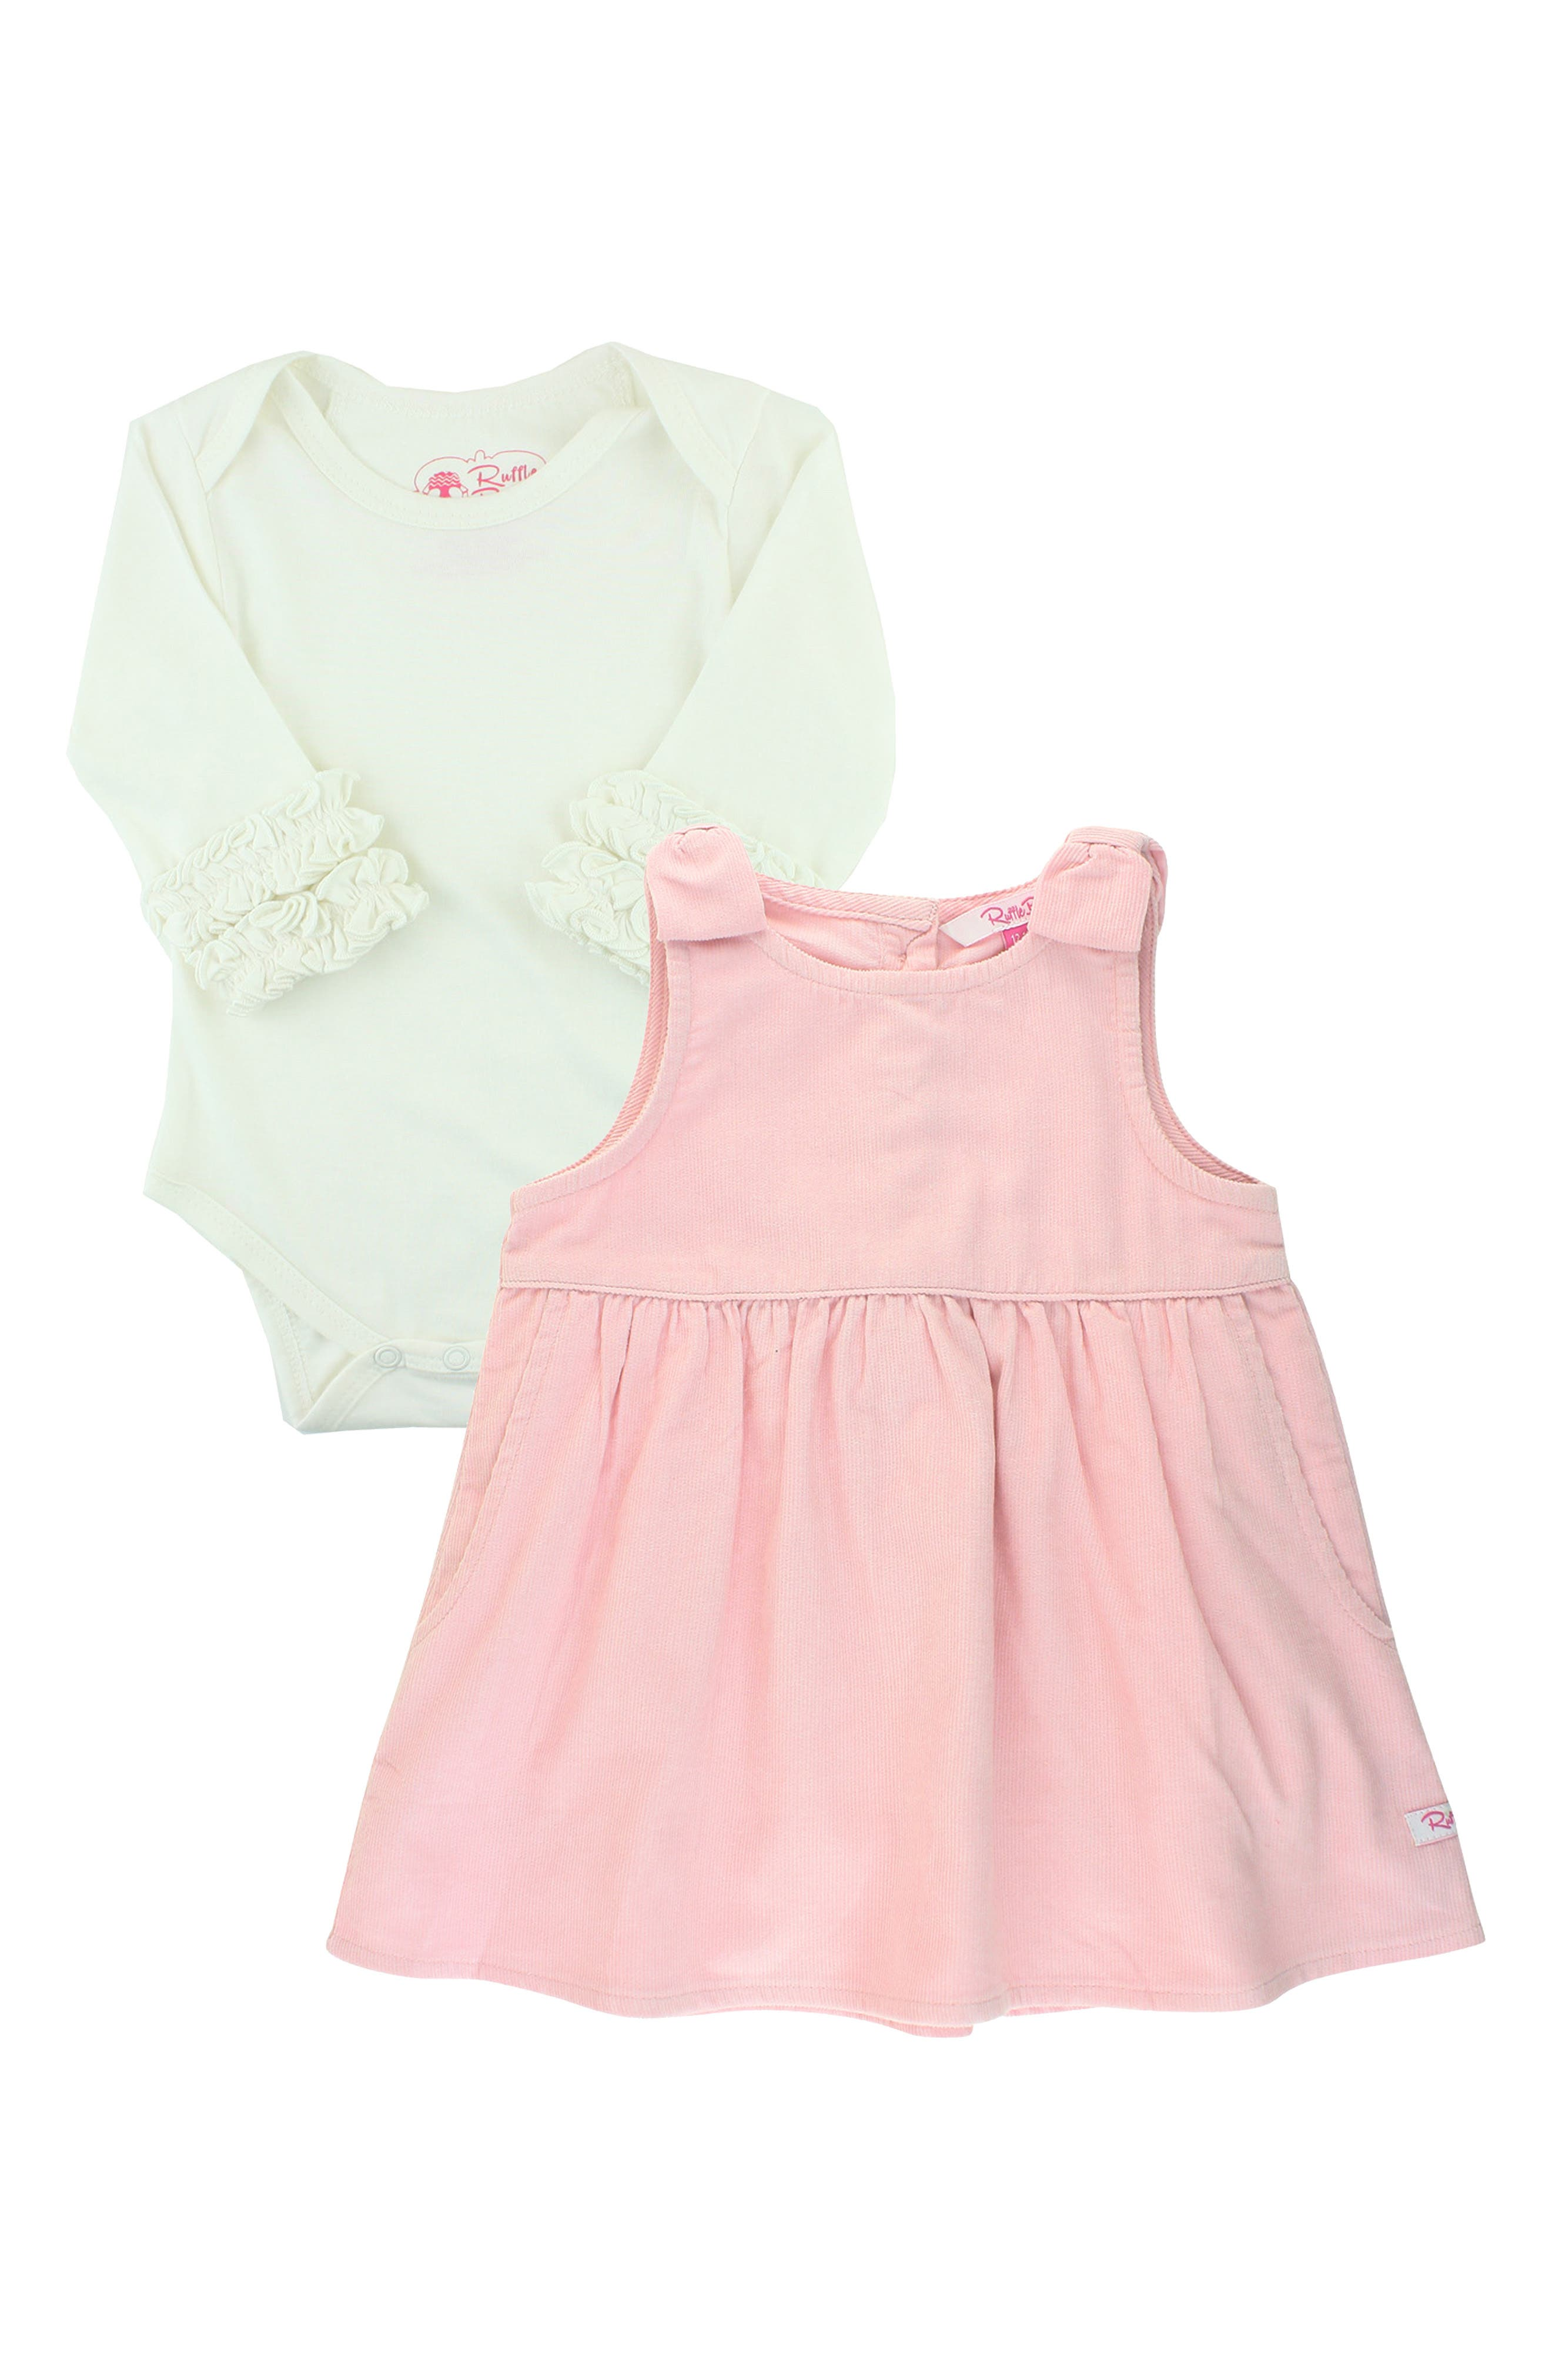 Fanciful frills trim this darling set that includes a comfy bodysuit and a bow-topped cord dress. Style Name: Rufflebutts Ballet Pink Cord Bodysuit & Jumper Dress Set (Baby). Style Number: 6095669. Available in stores.